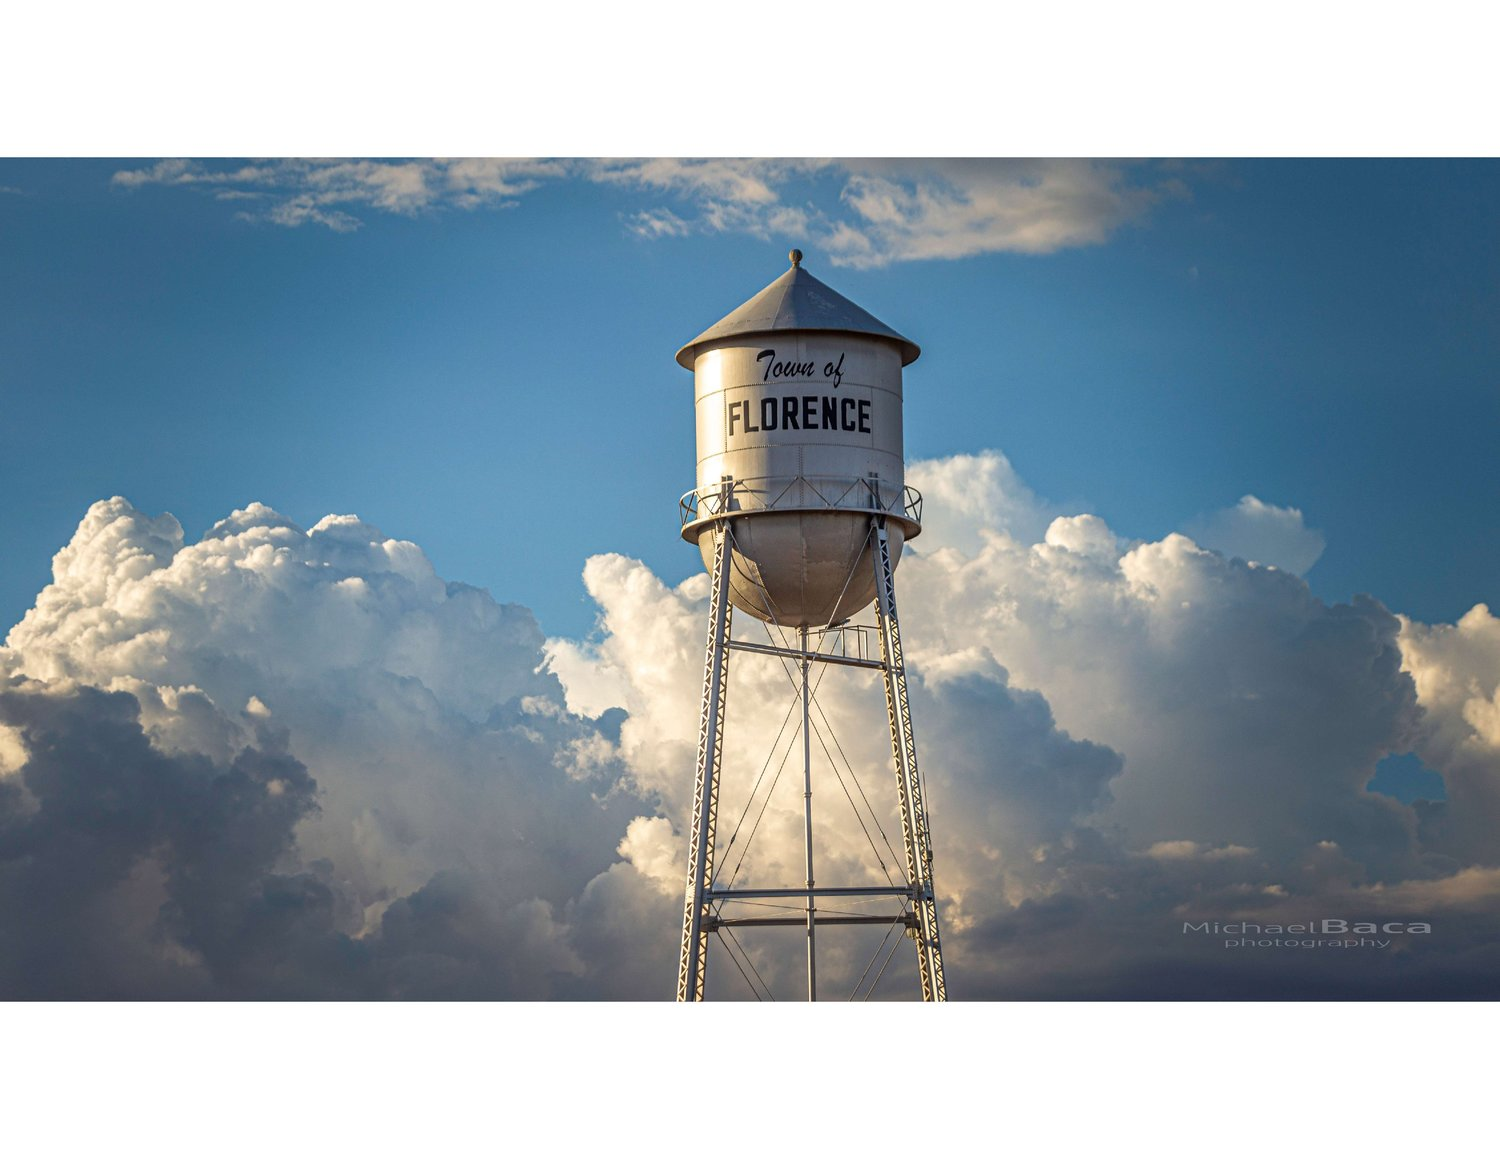 A water tower welcomes folks to Florence.